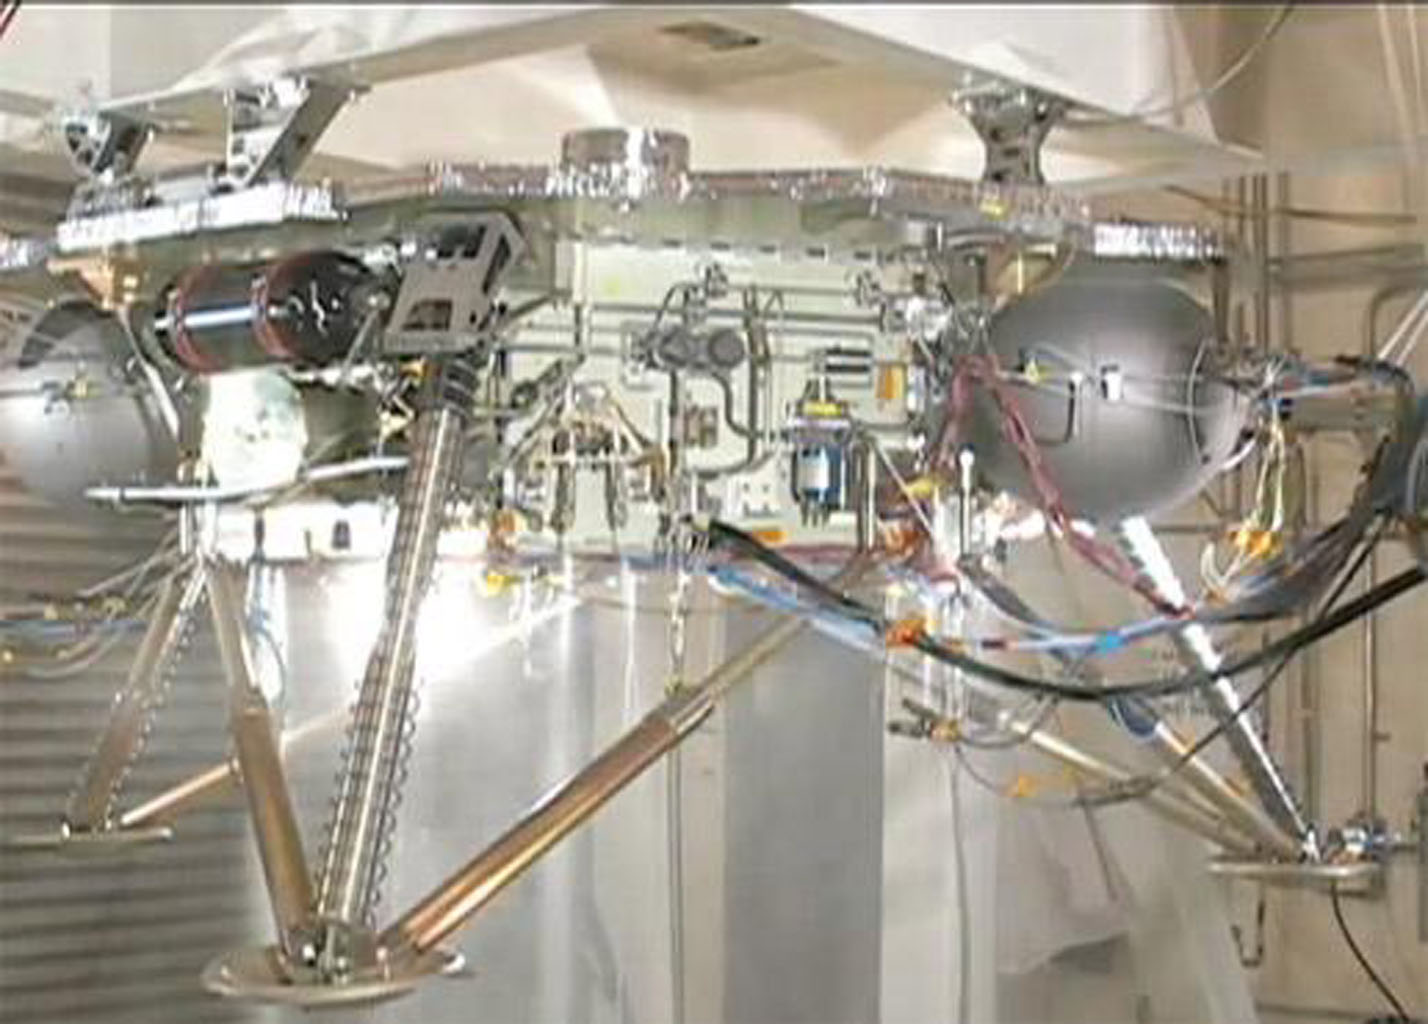 This video shows the propulsion system on an engineering model of NASA's Phoenix Mars Lander being successfully tested.